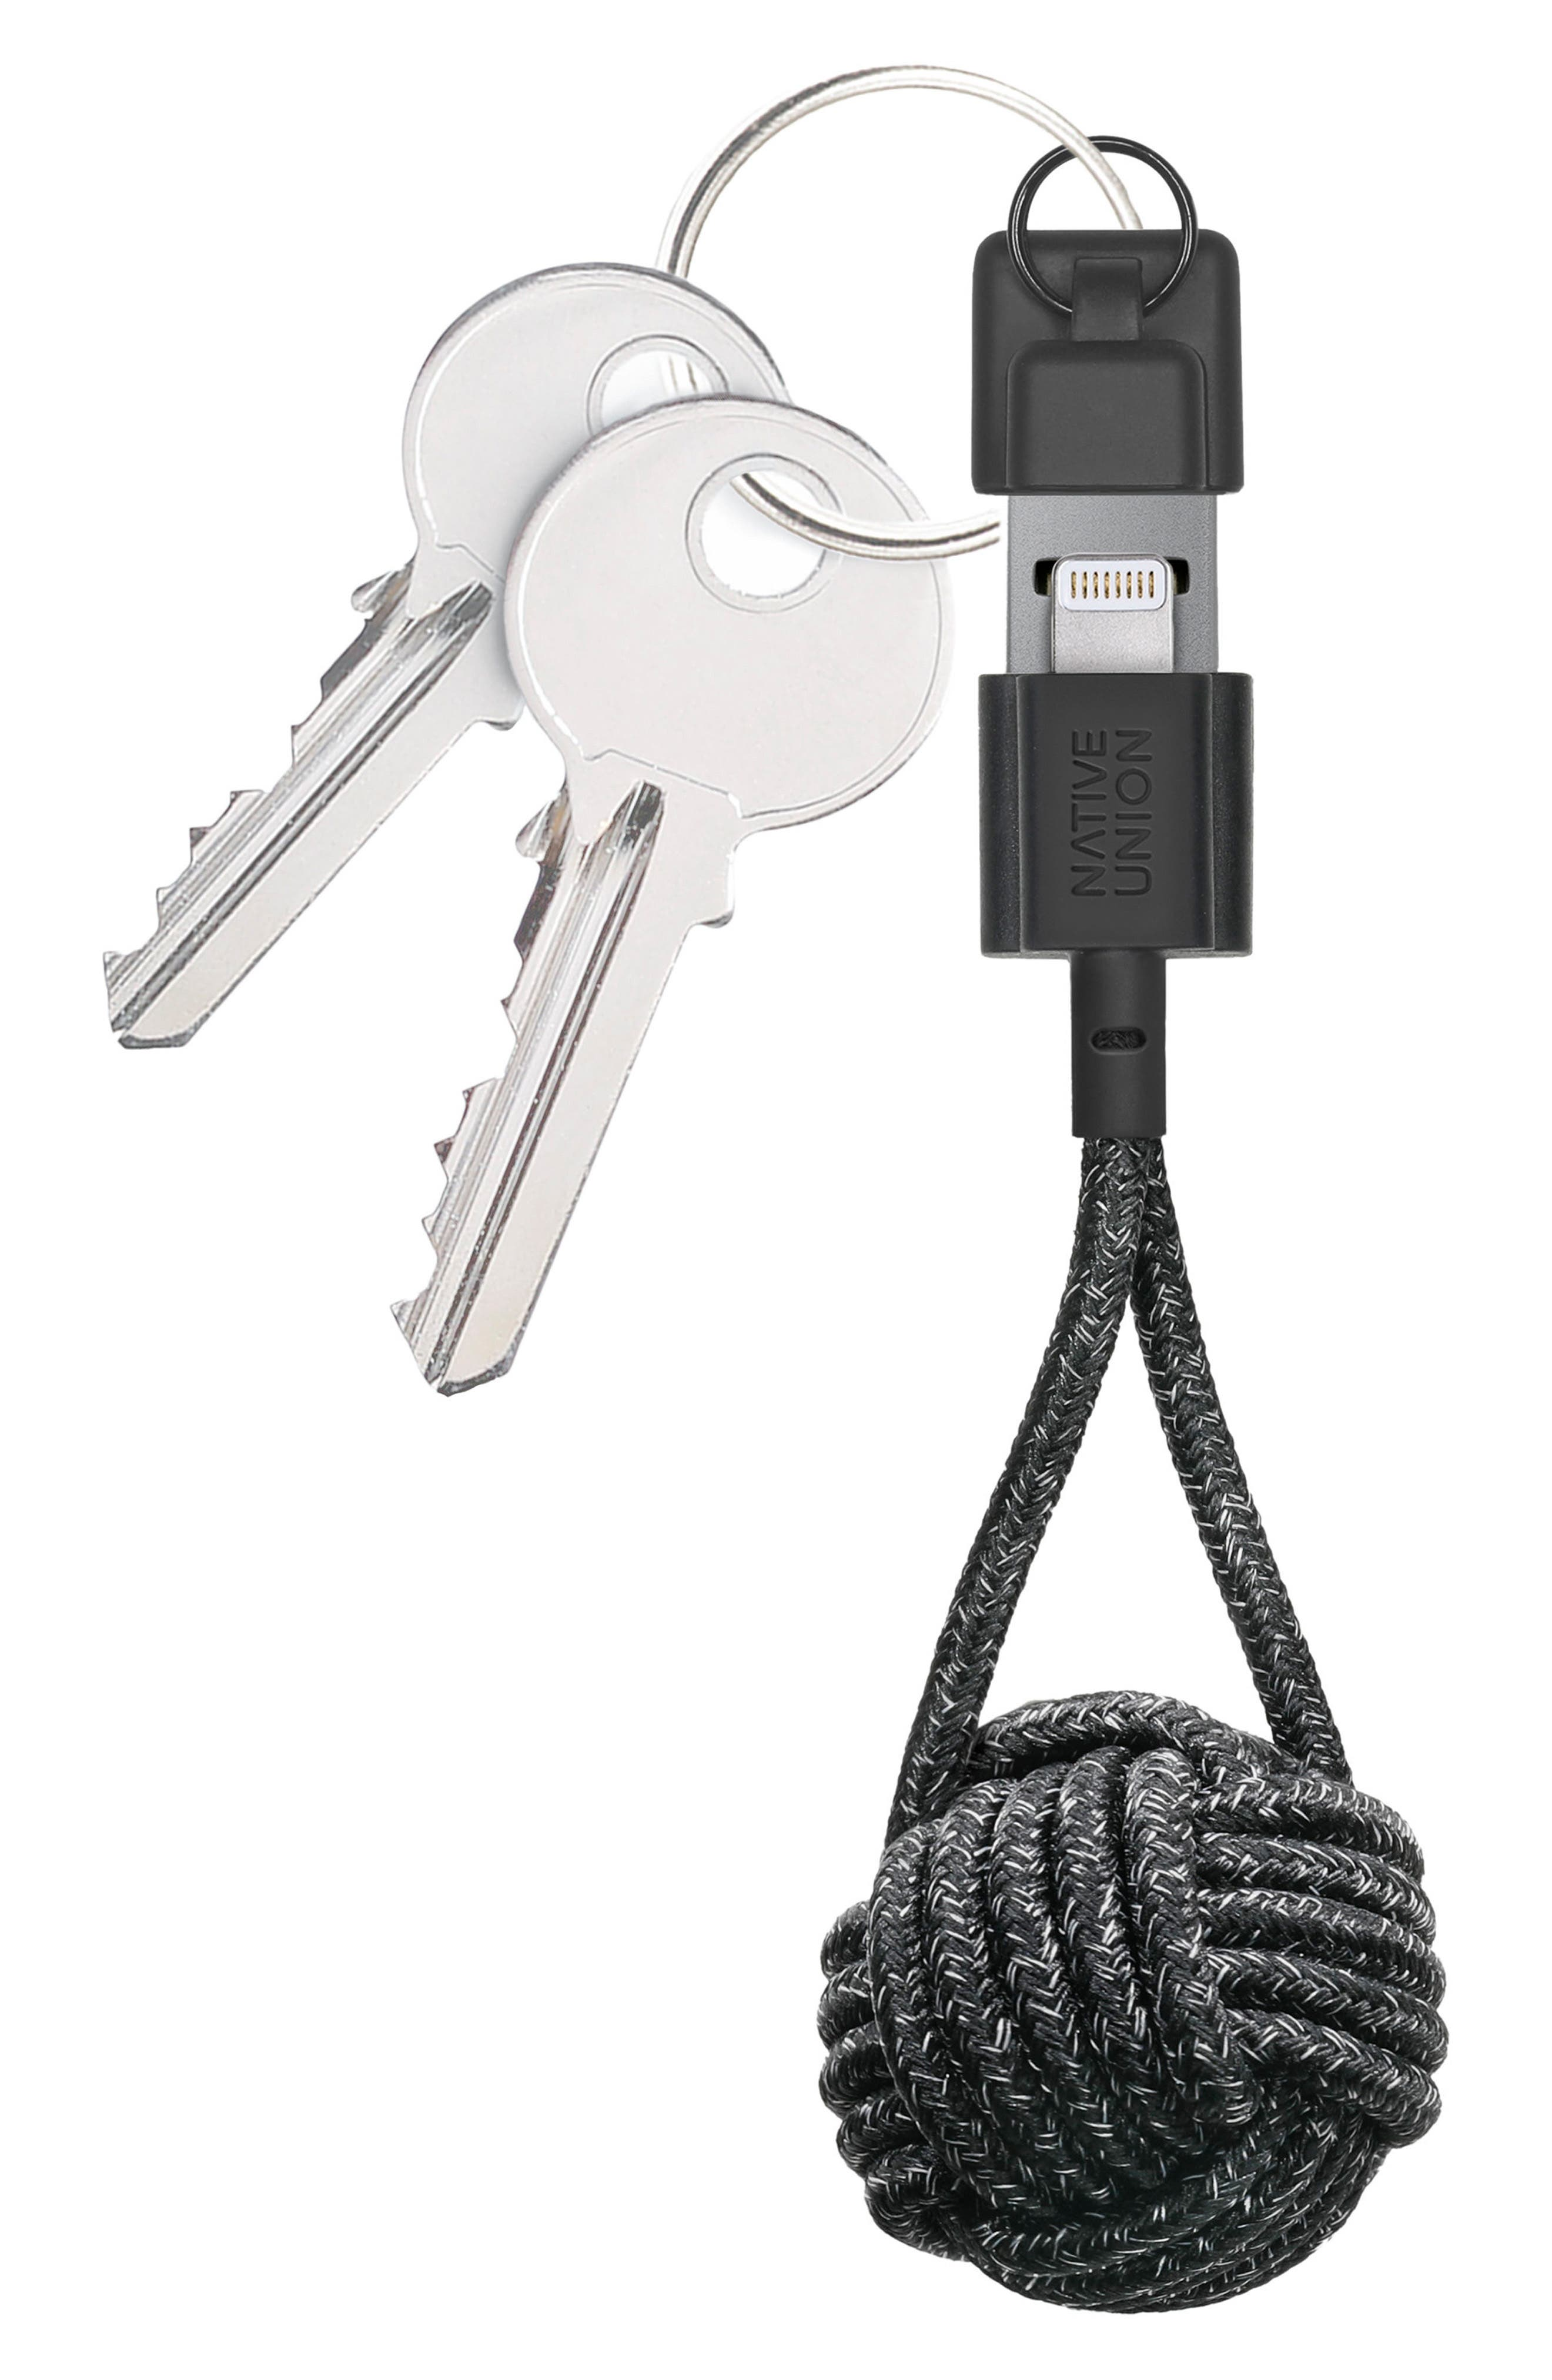 KEY Lightning Charging Cable Key Chain,                             Main thumbnail 1, color,                             Black And White